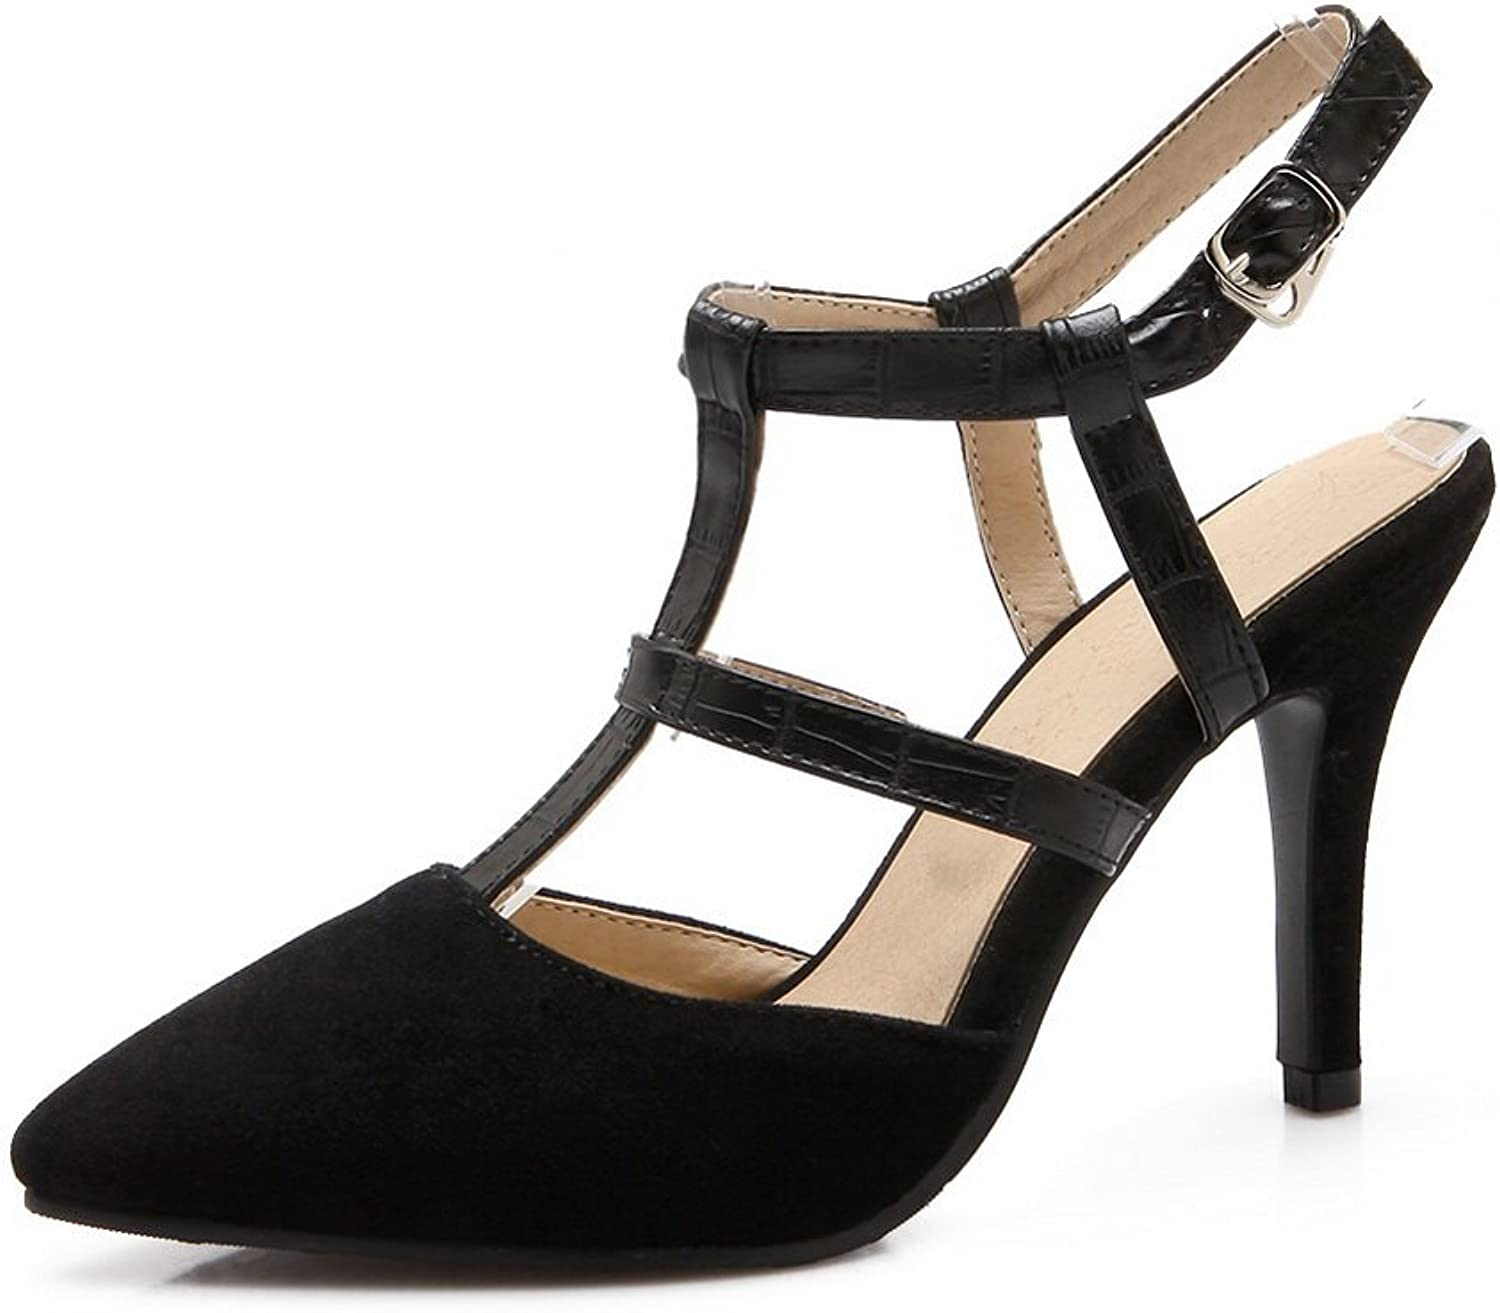 AdeeSu Womens High-Heels Slip-Resistant Frosted Pumps shoes